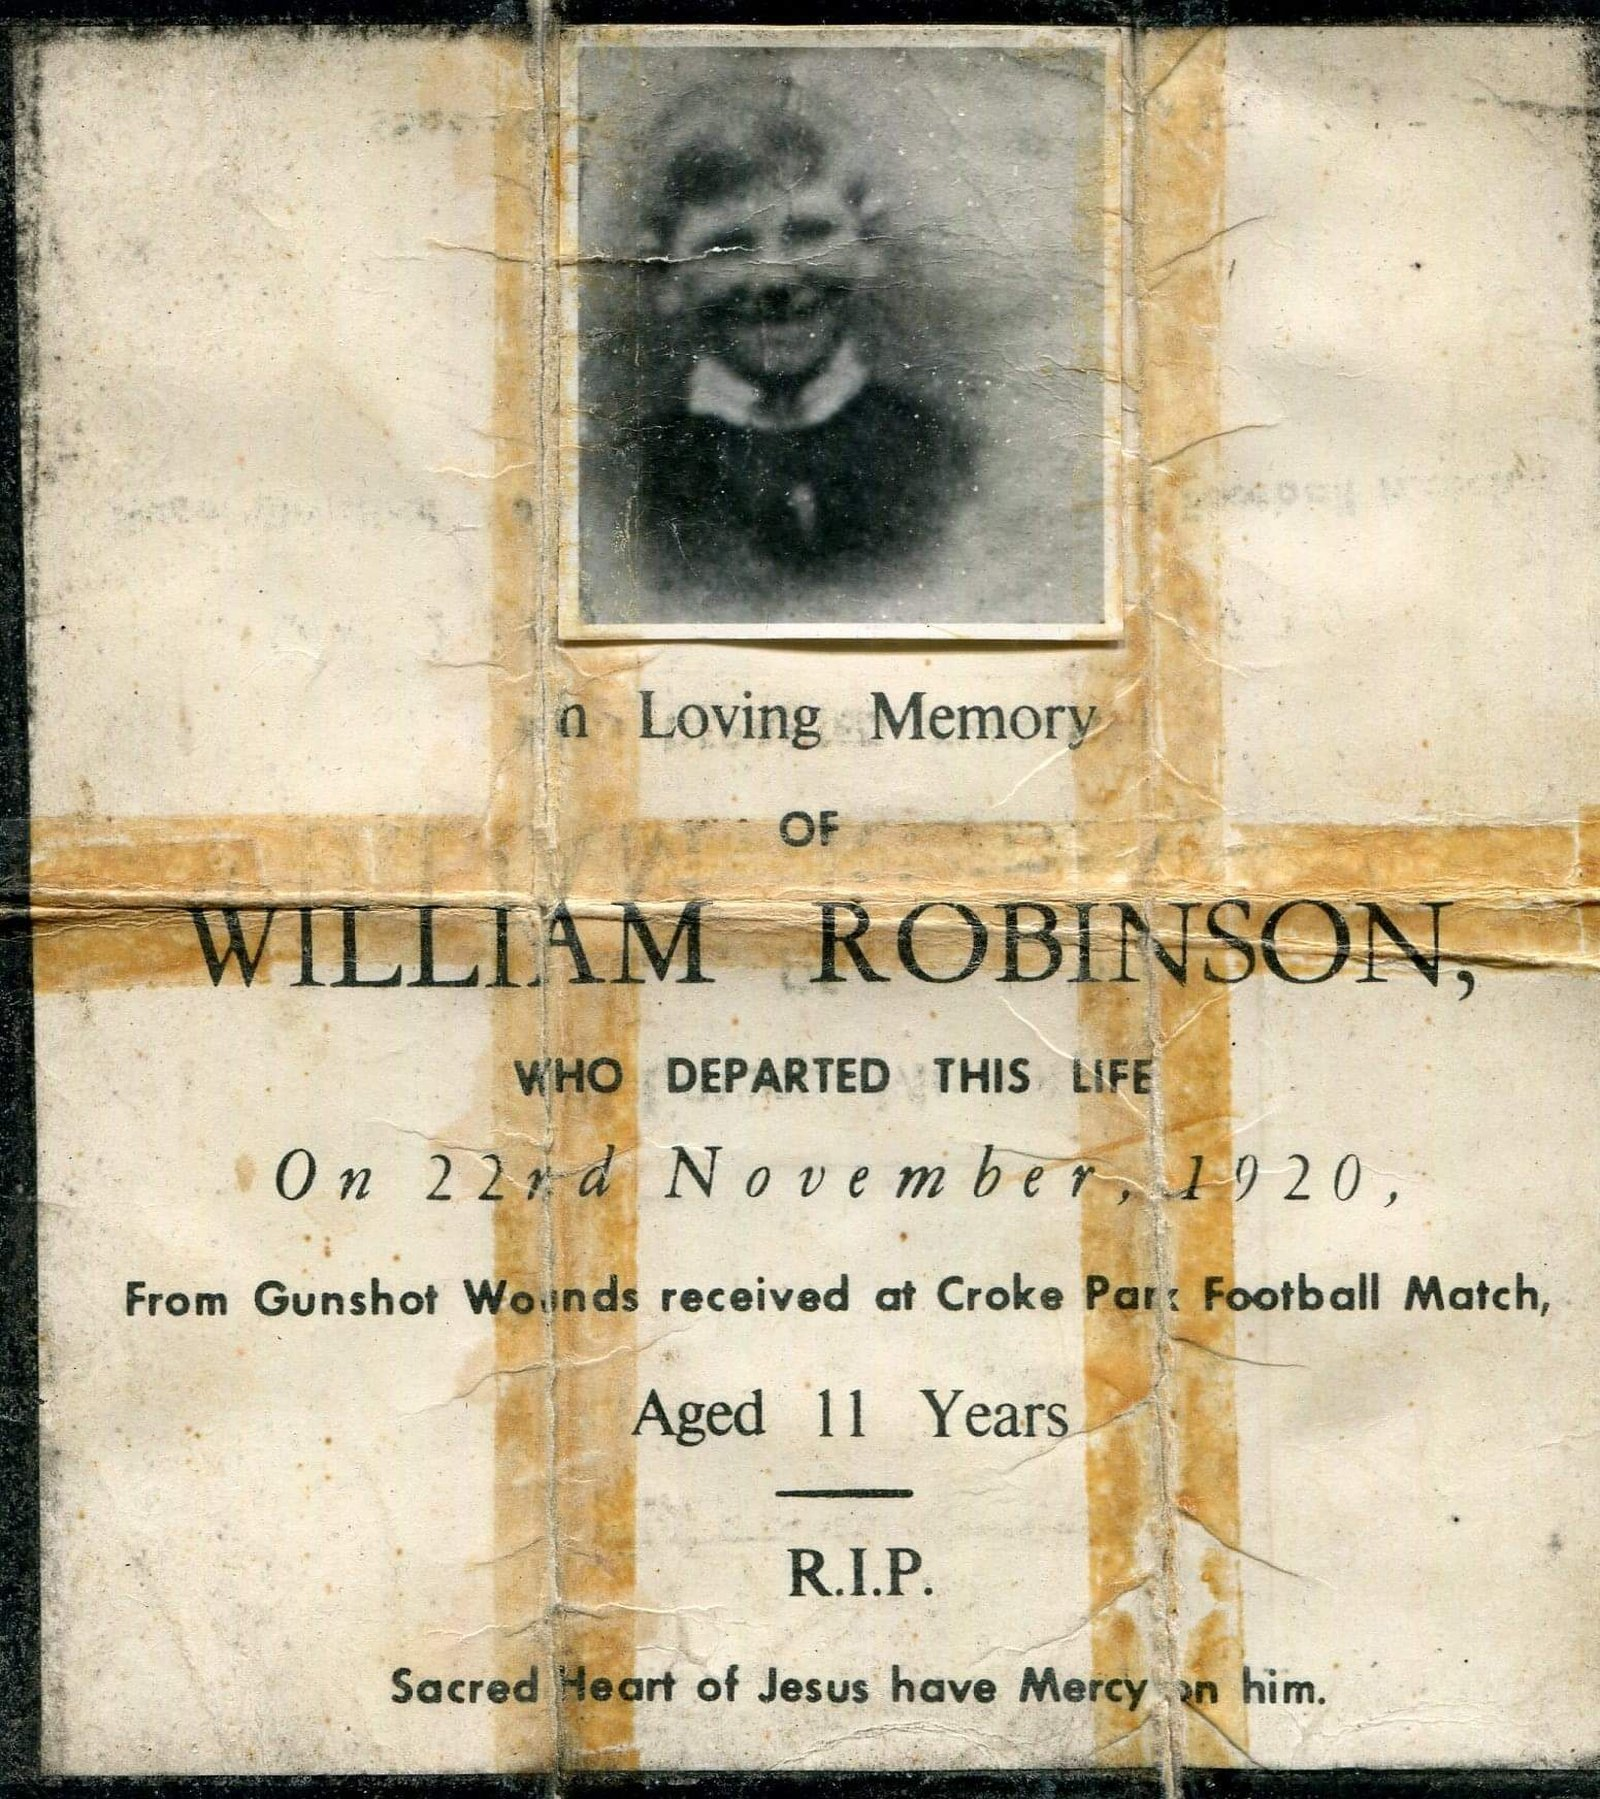 Image - William Robinson memorial card. The date of death is wrong on the card. William died on 23 November (Credit: Karina Leeson).